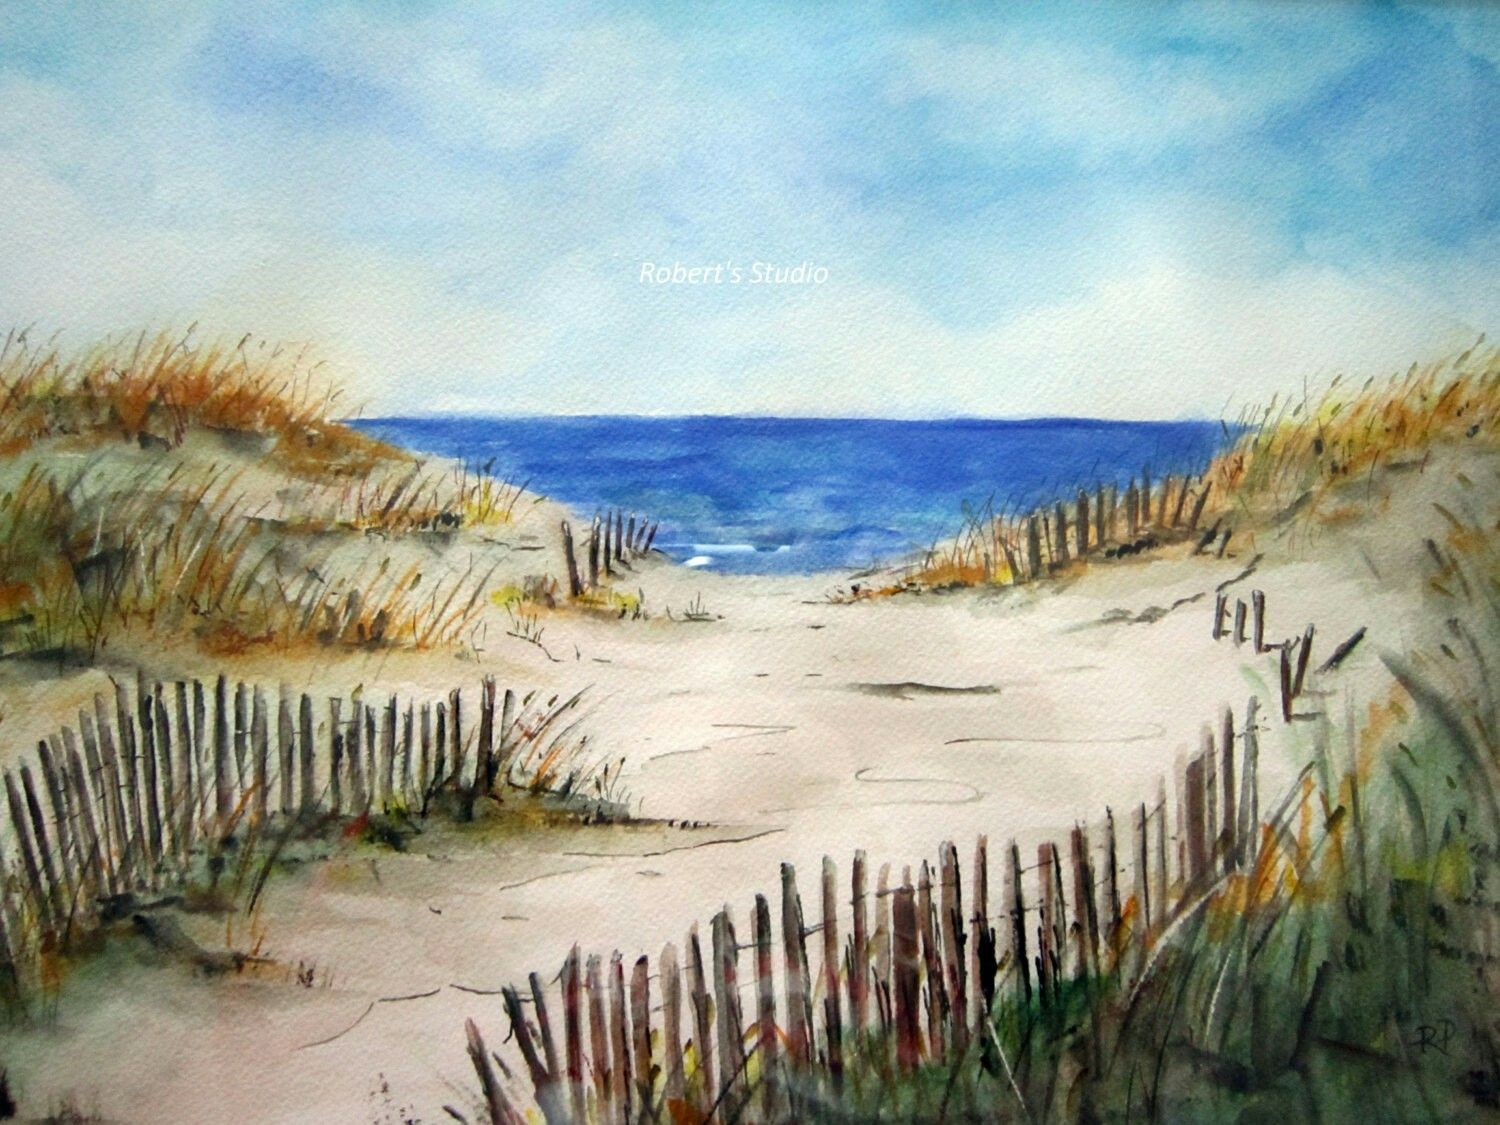 Pin By Conni Bassett Culp On Art That I Love Ocean Painting Landscape Paintings Beach Painting